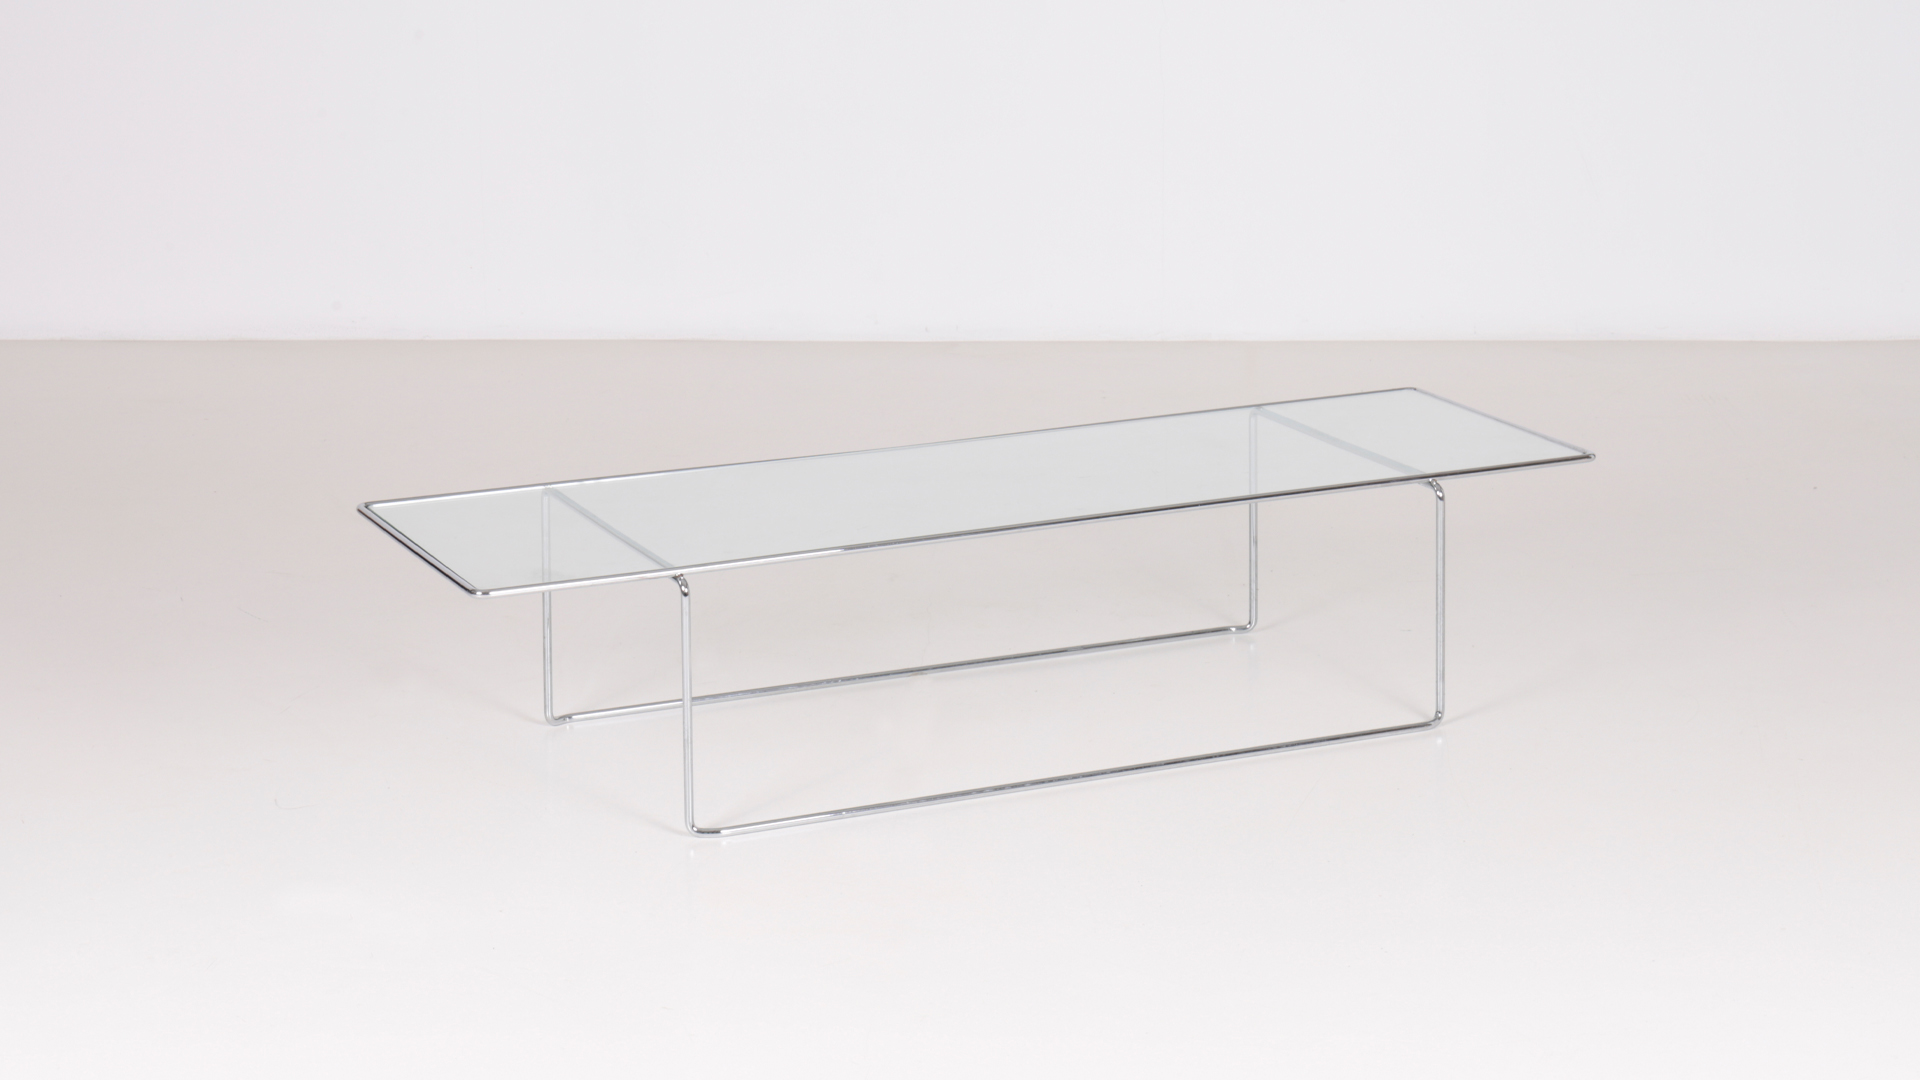 Marcel 148 low table by Kazuhide Takahama | Paradisoterrestre